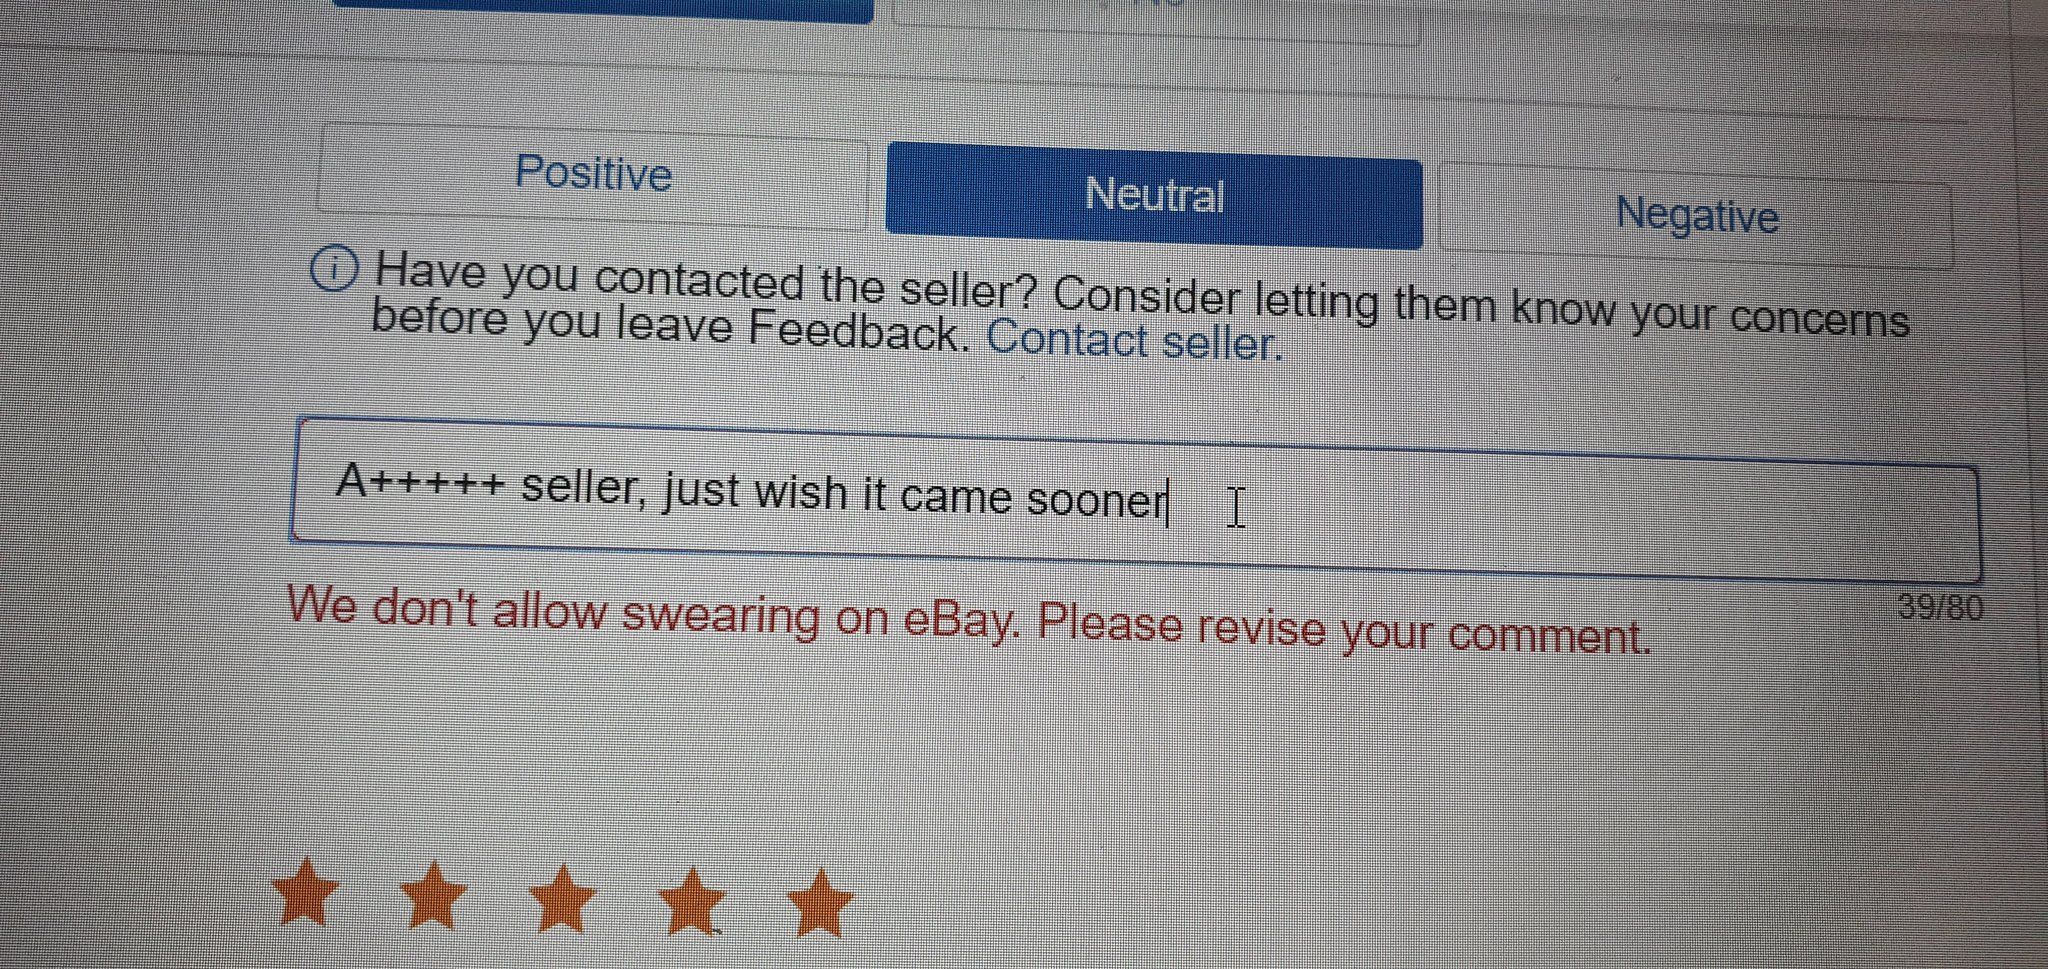 Nerd Gaming On Twitter Trying To Leave Feedback An This Error Message Came Up I Deleted The 2nd Part Of The Comment An It Posted Fine Wtf Ebay Ebay Youfuckedup Https T Co 0v62toqk1o